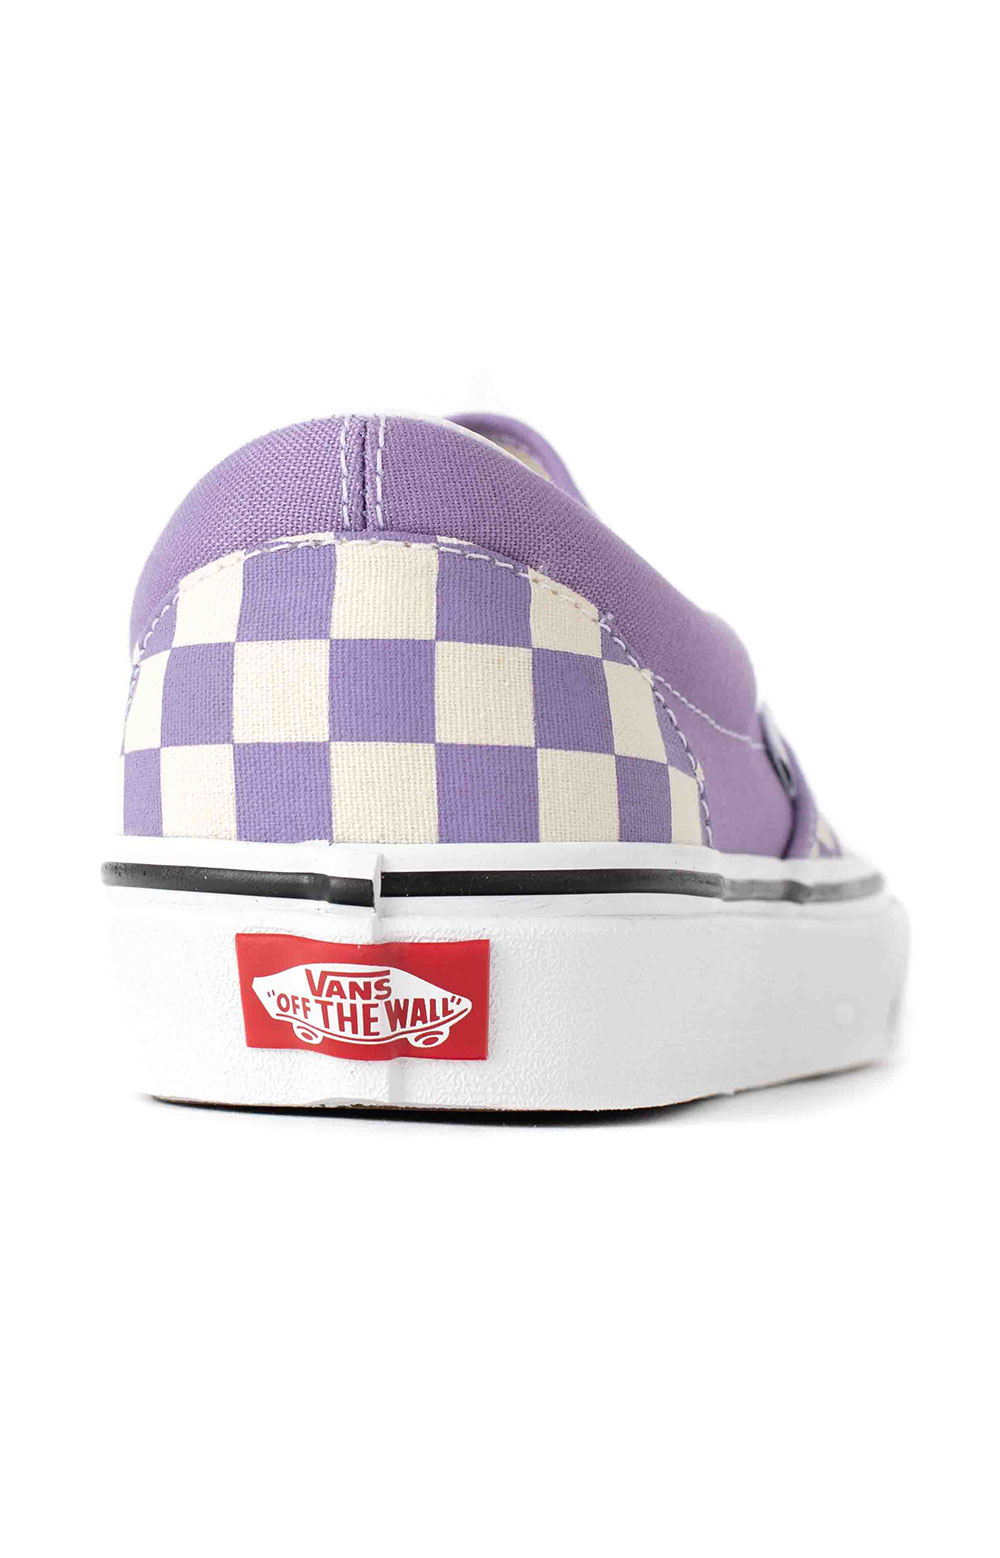 Checkerboard Classic Slip-On Shoes - Chalk Violet  5